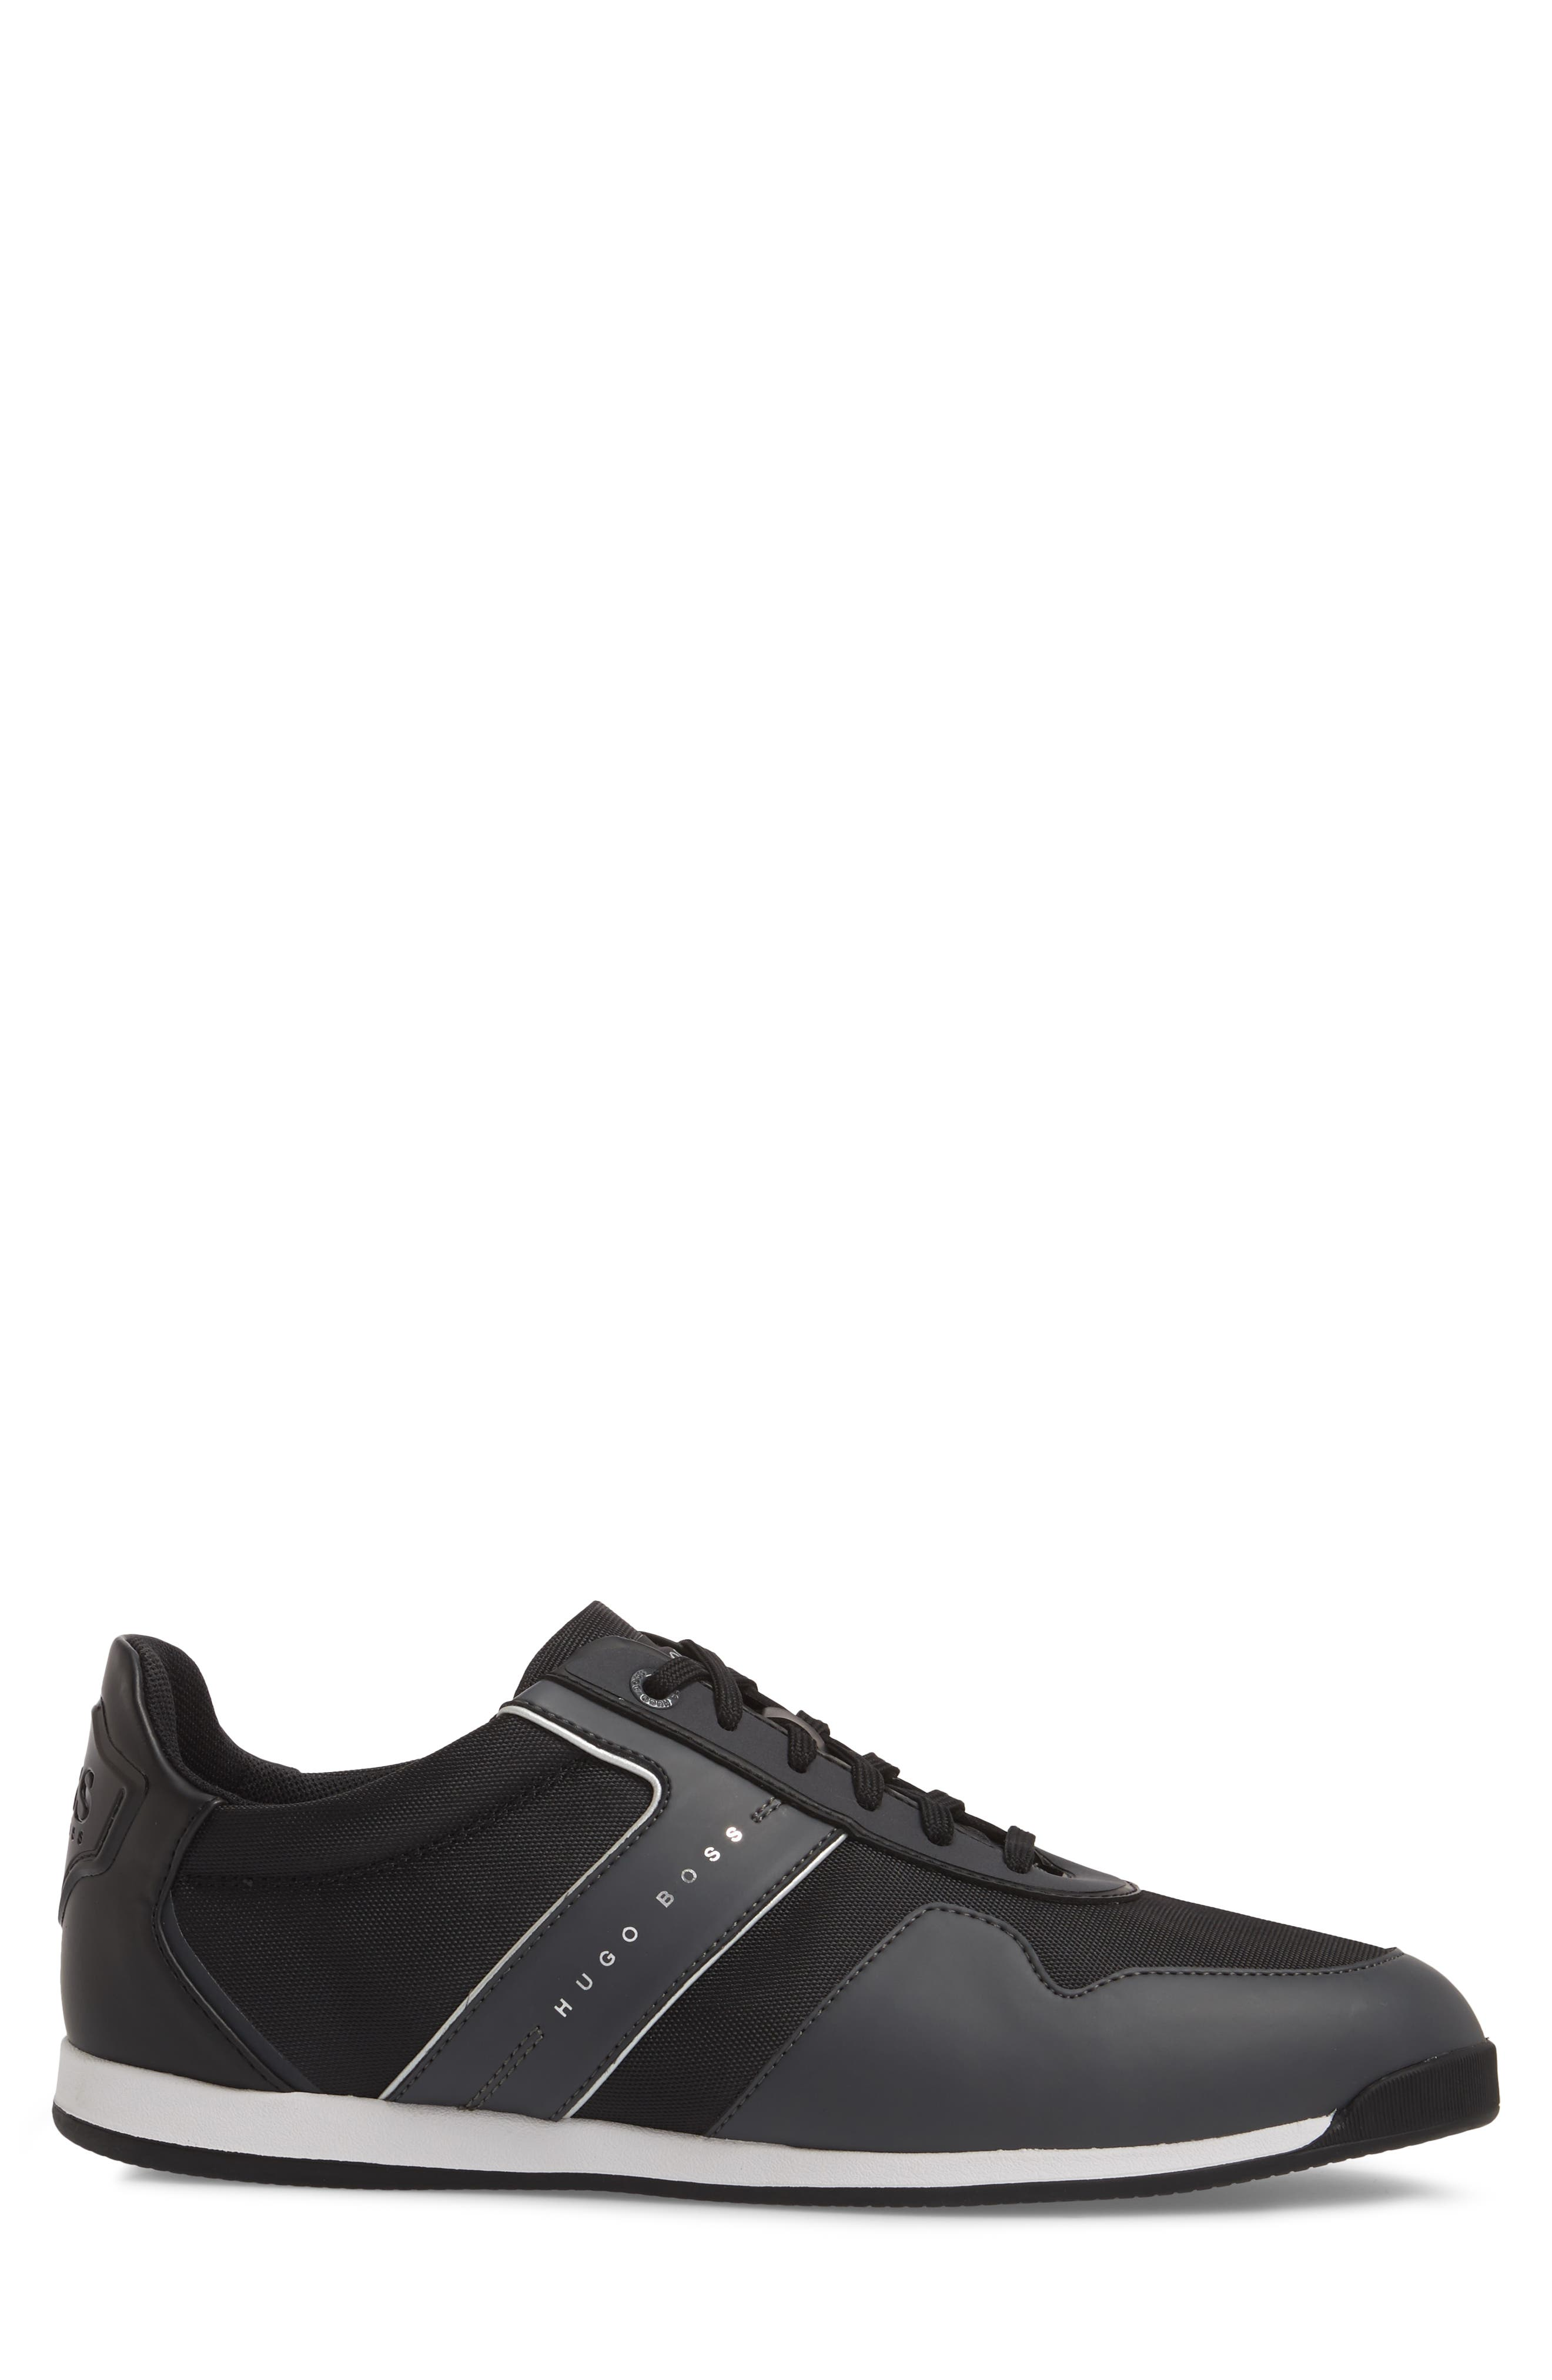 Maze Water Resistant Low Top Sneaker,                             Alternate thumbnail 3, color,                             CHARCOAL